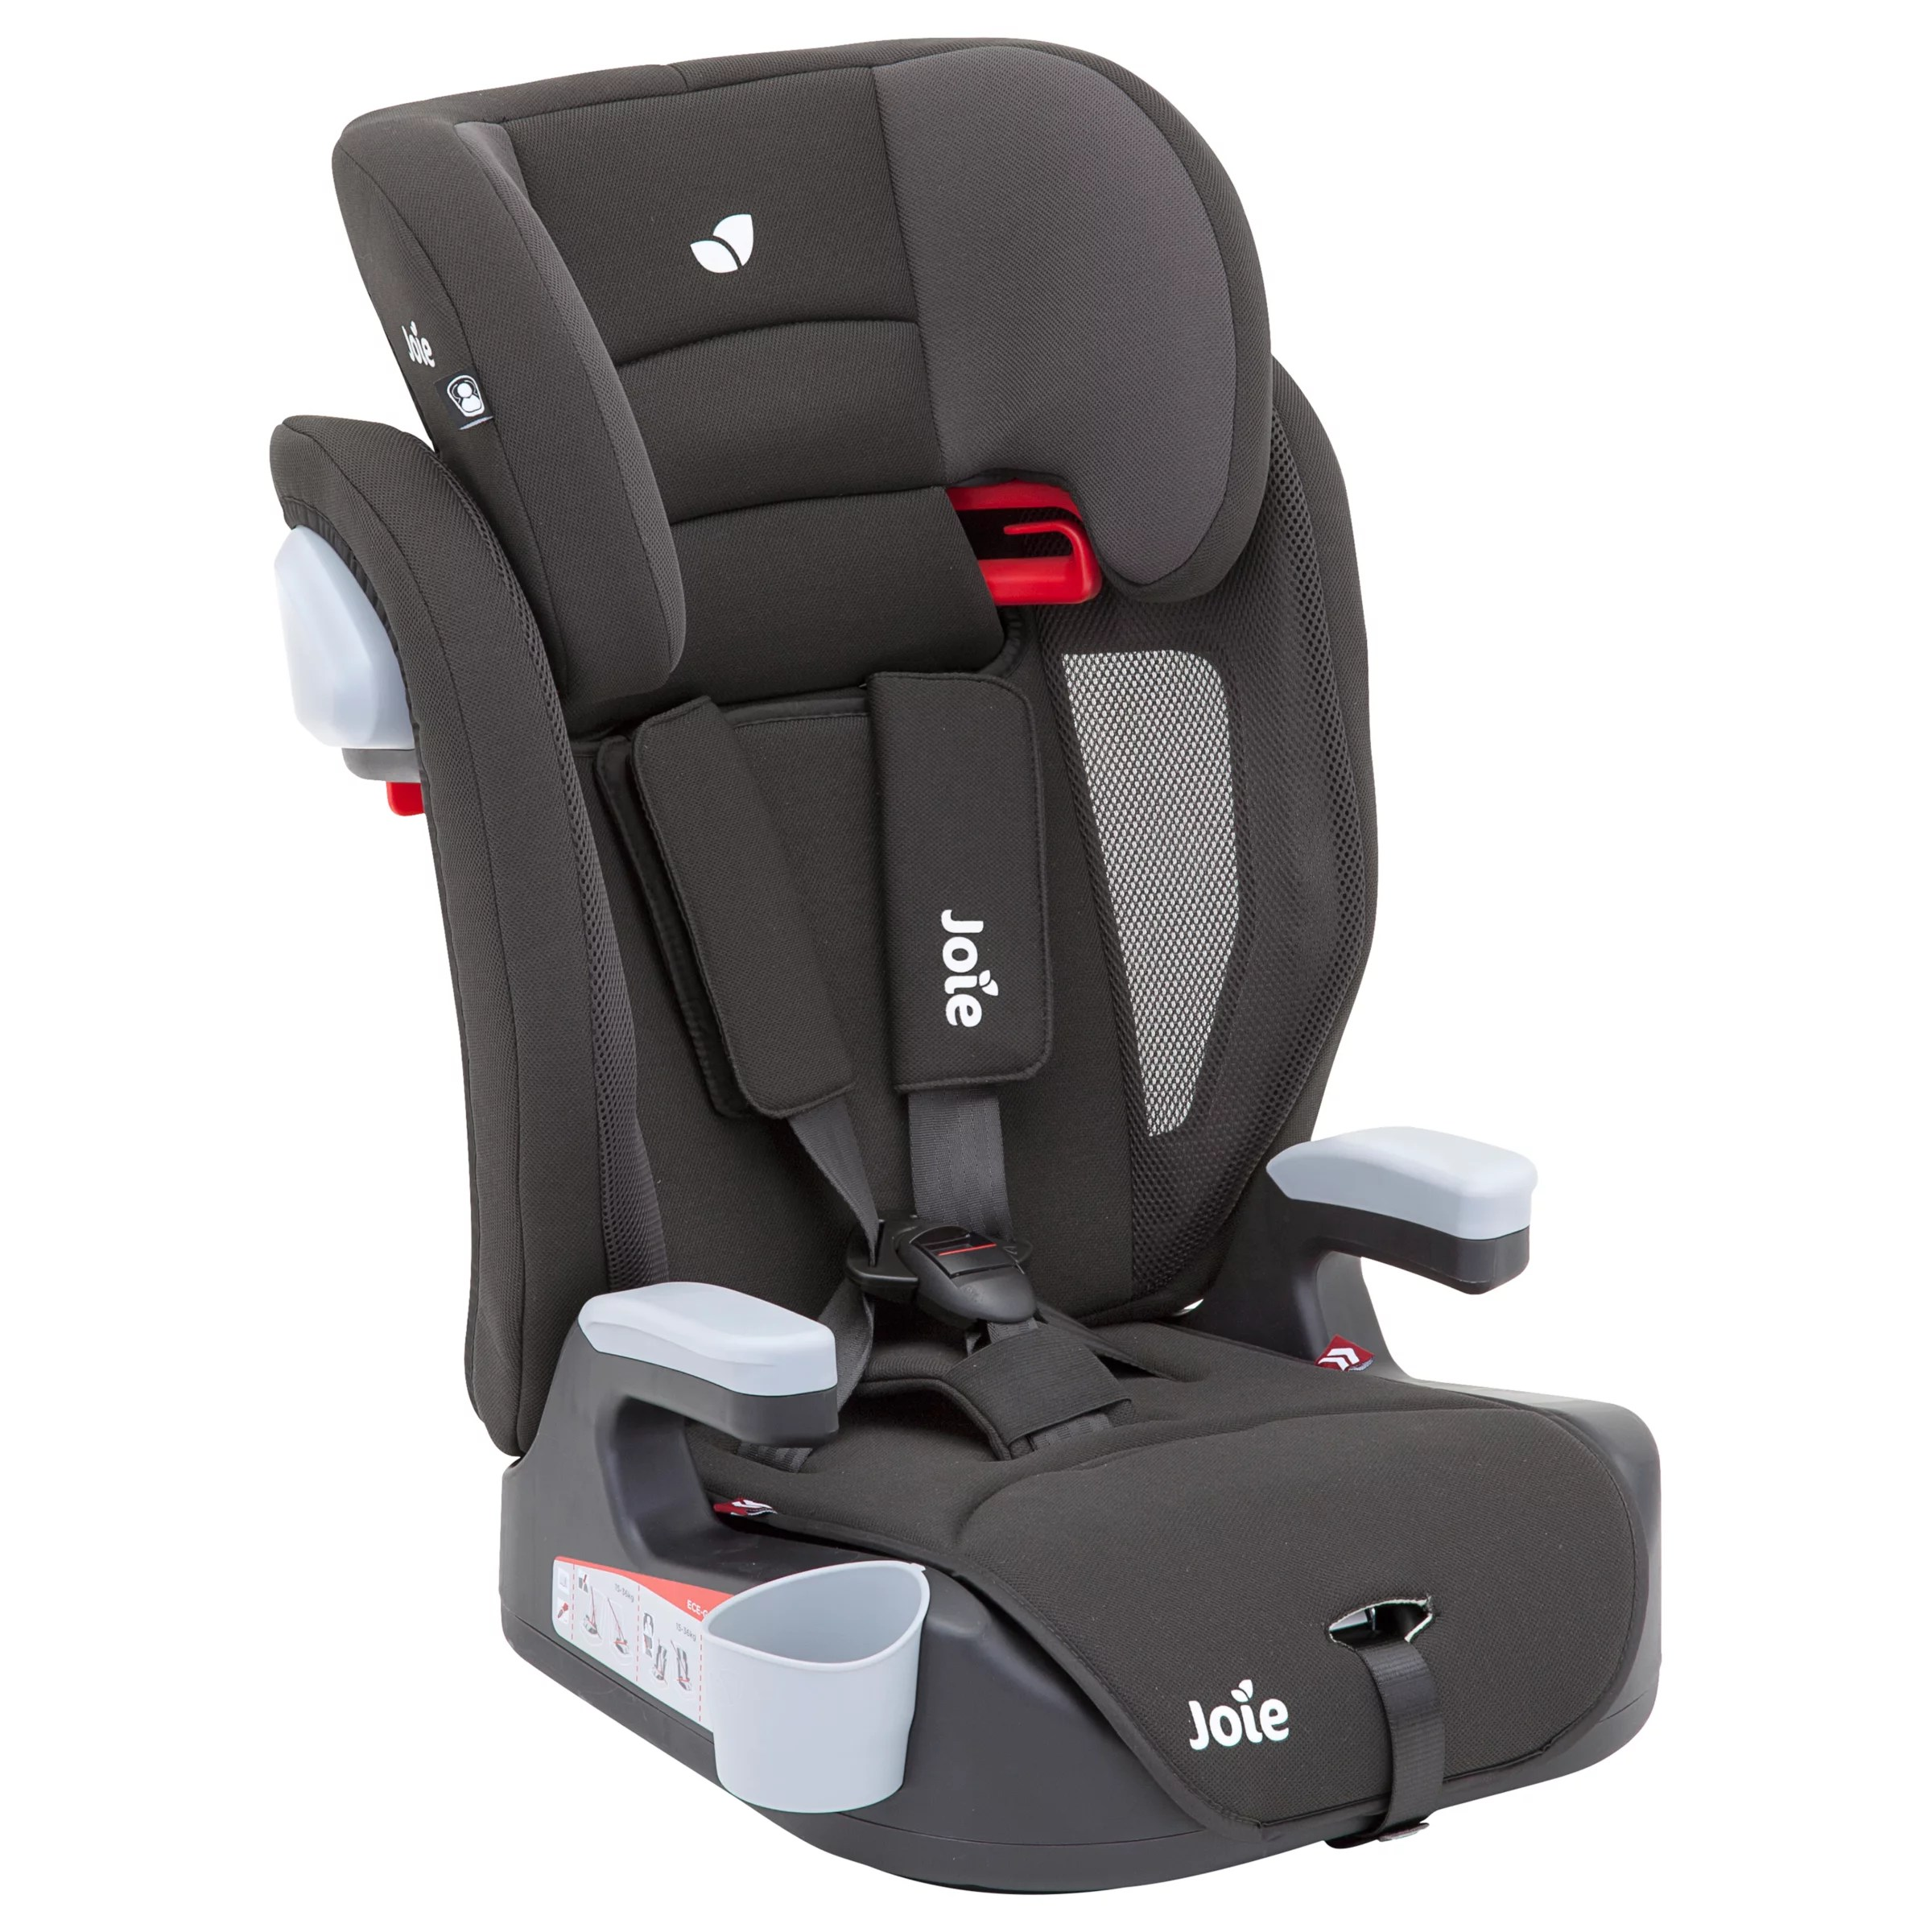 Joie Baby Car Seat Usa Joie Baby Elevate Group 1 2 3 Car Seat Two Tone Black